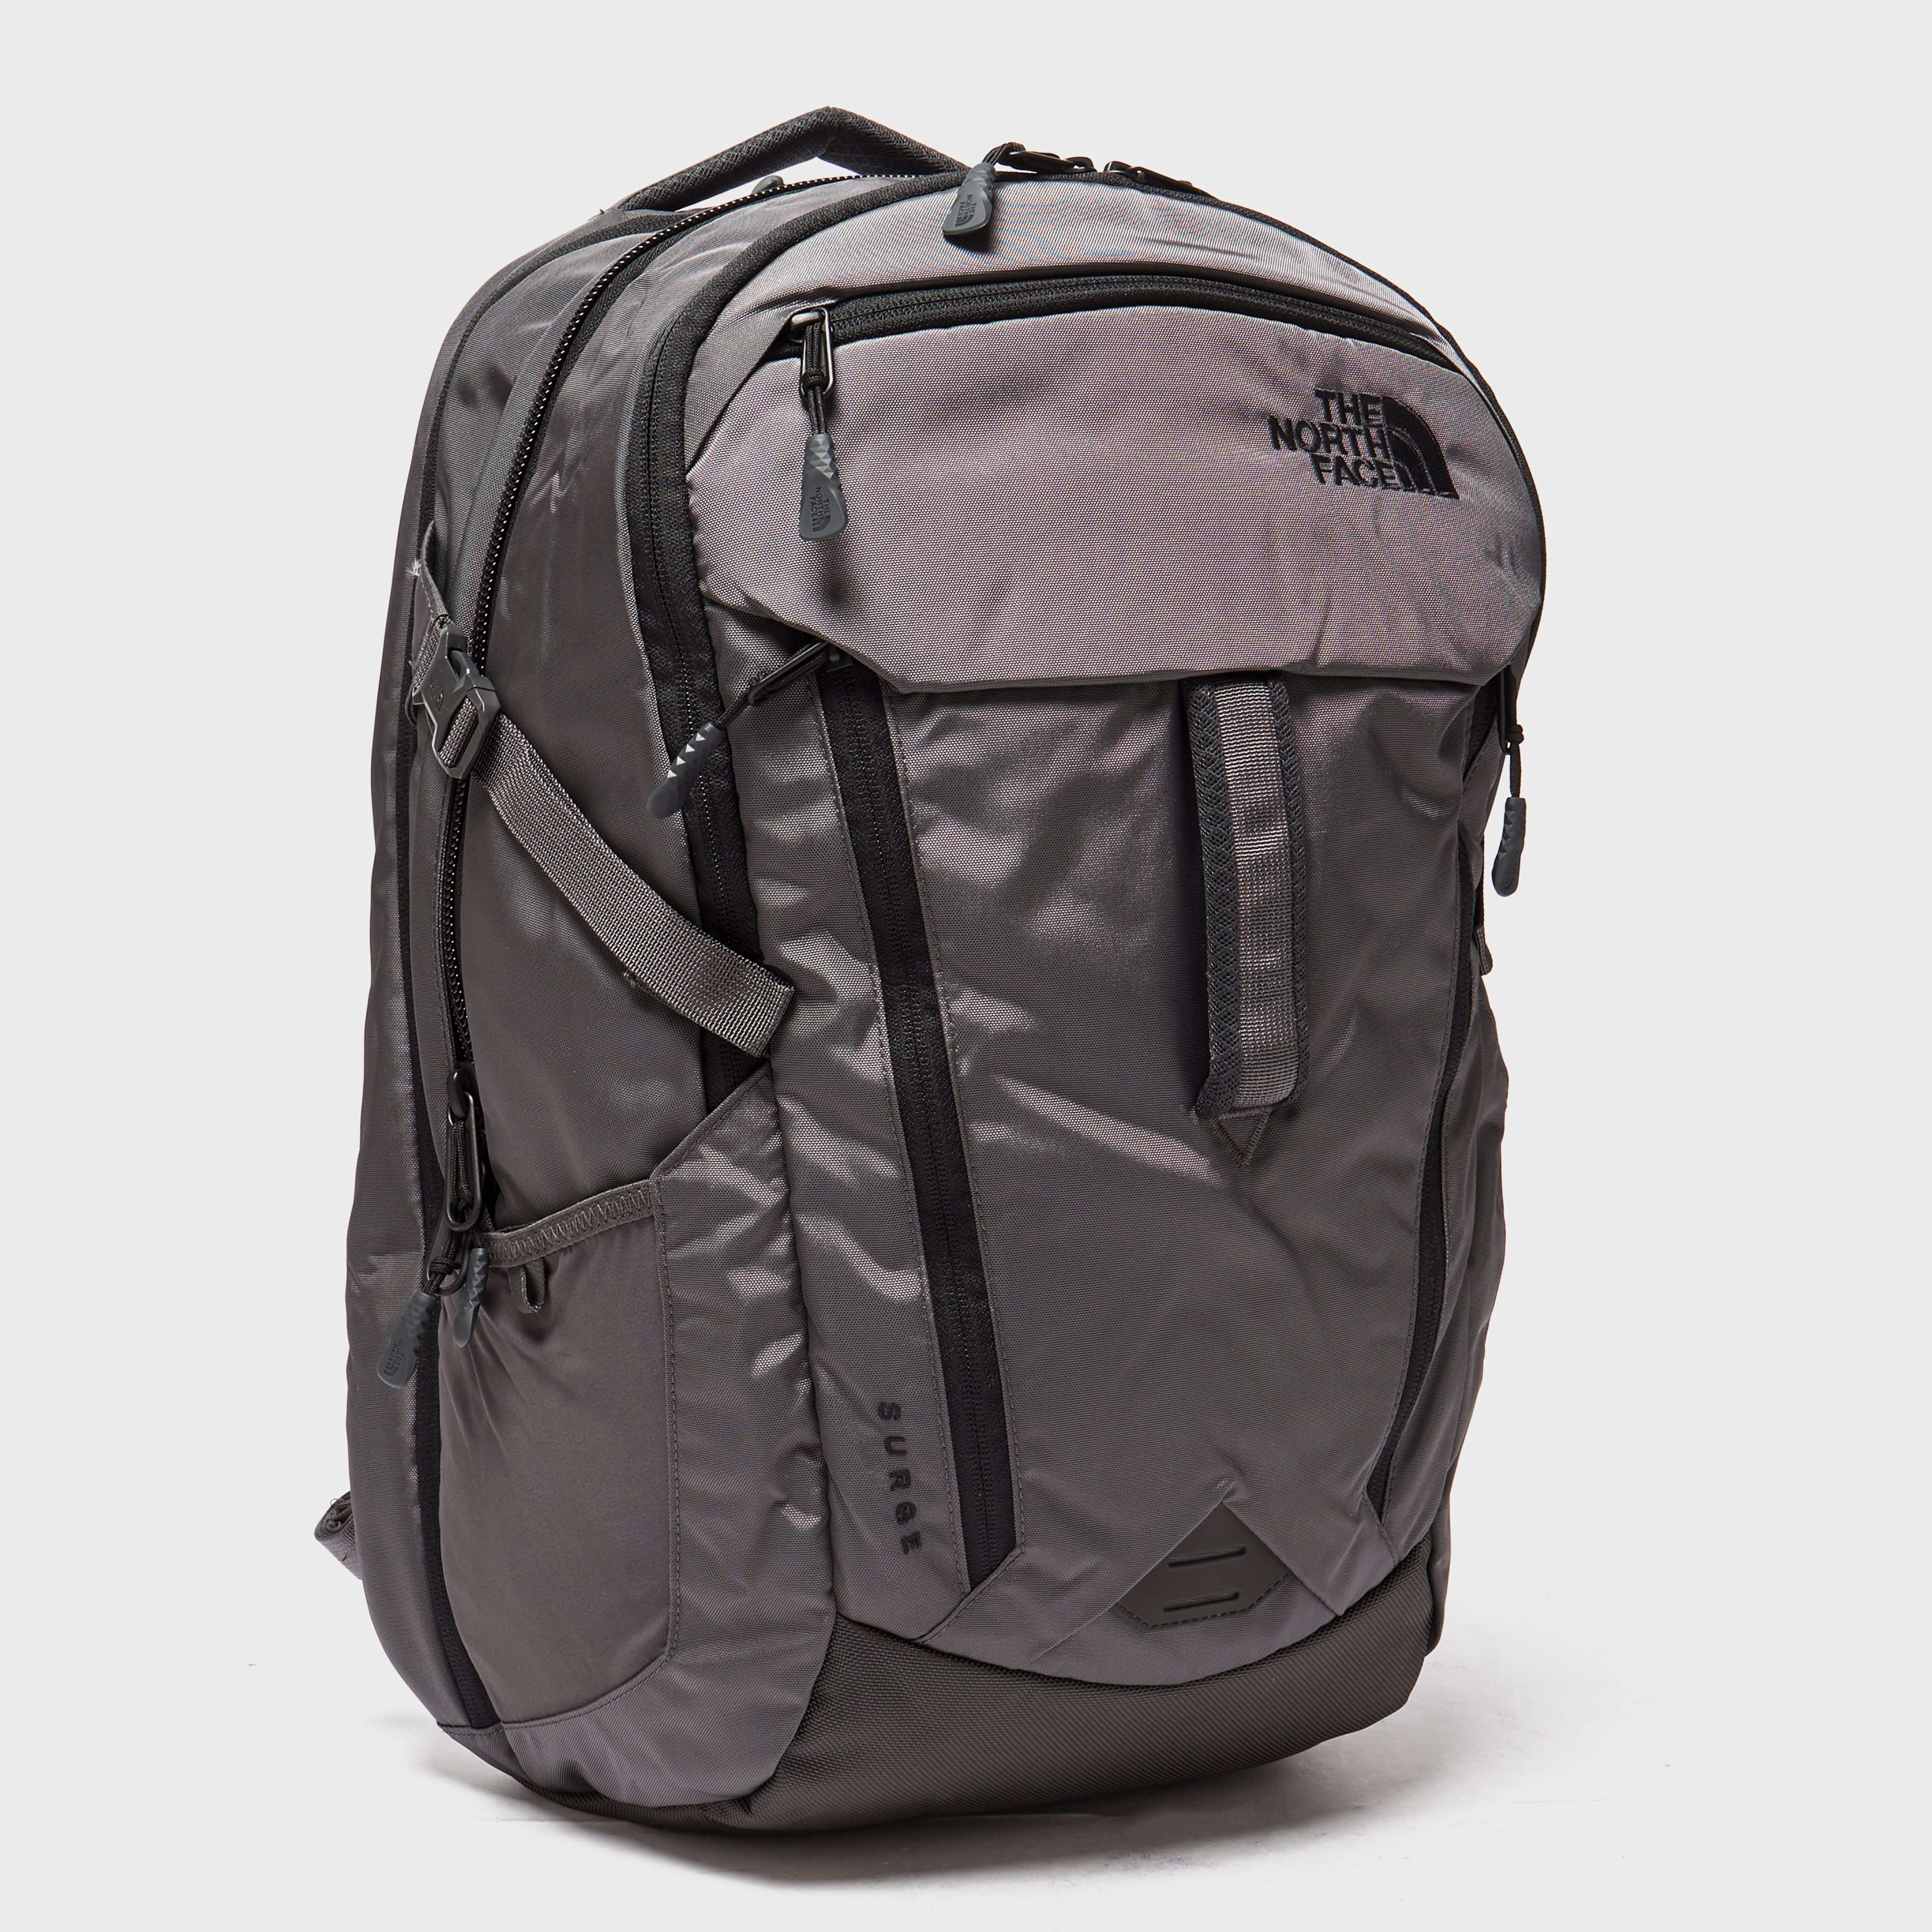 THE NORTH FACE Surge Backpack 33L